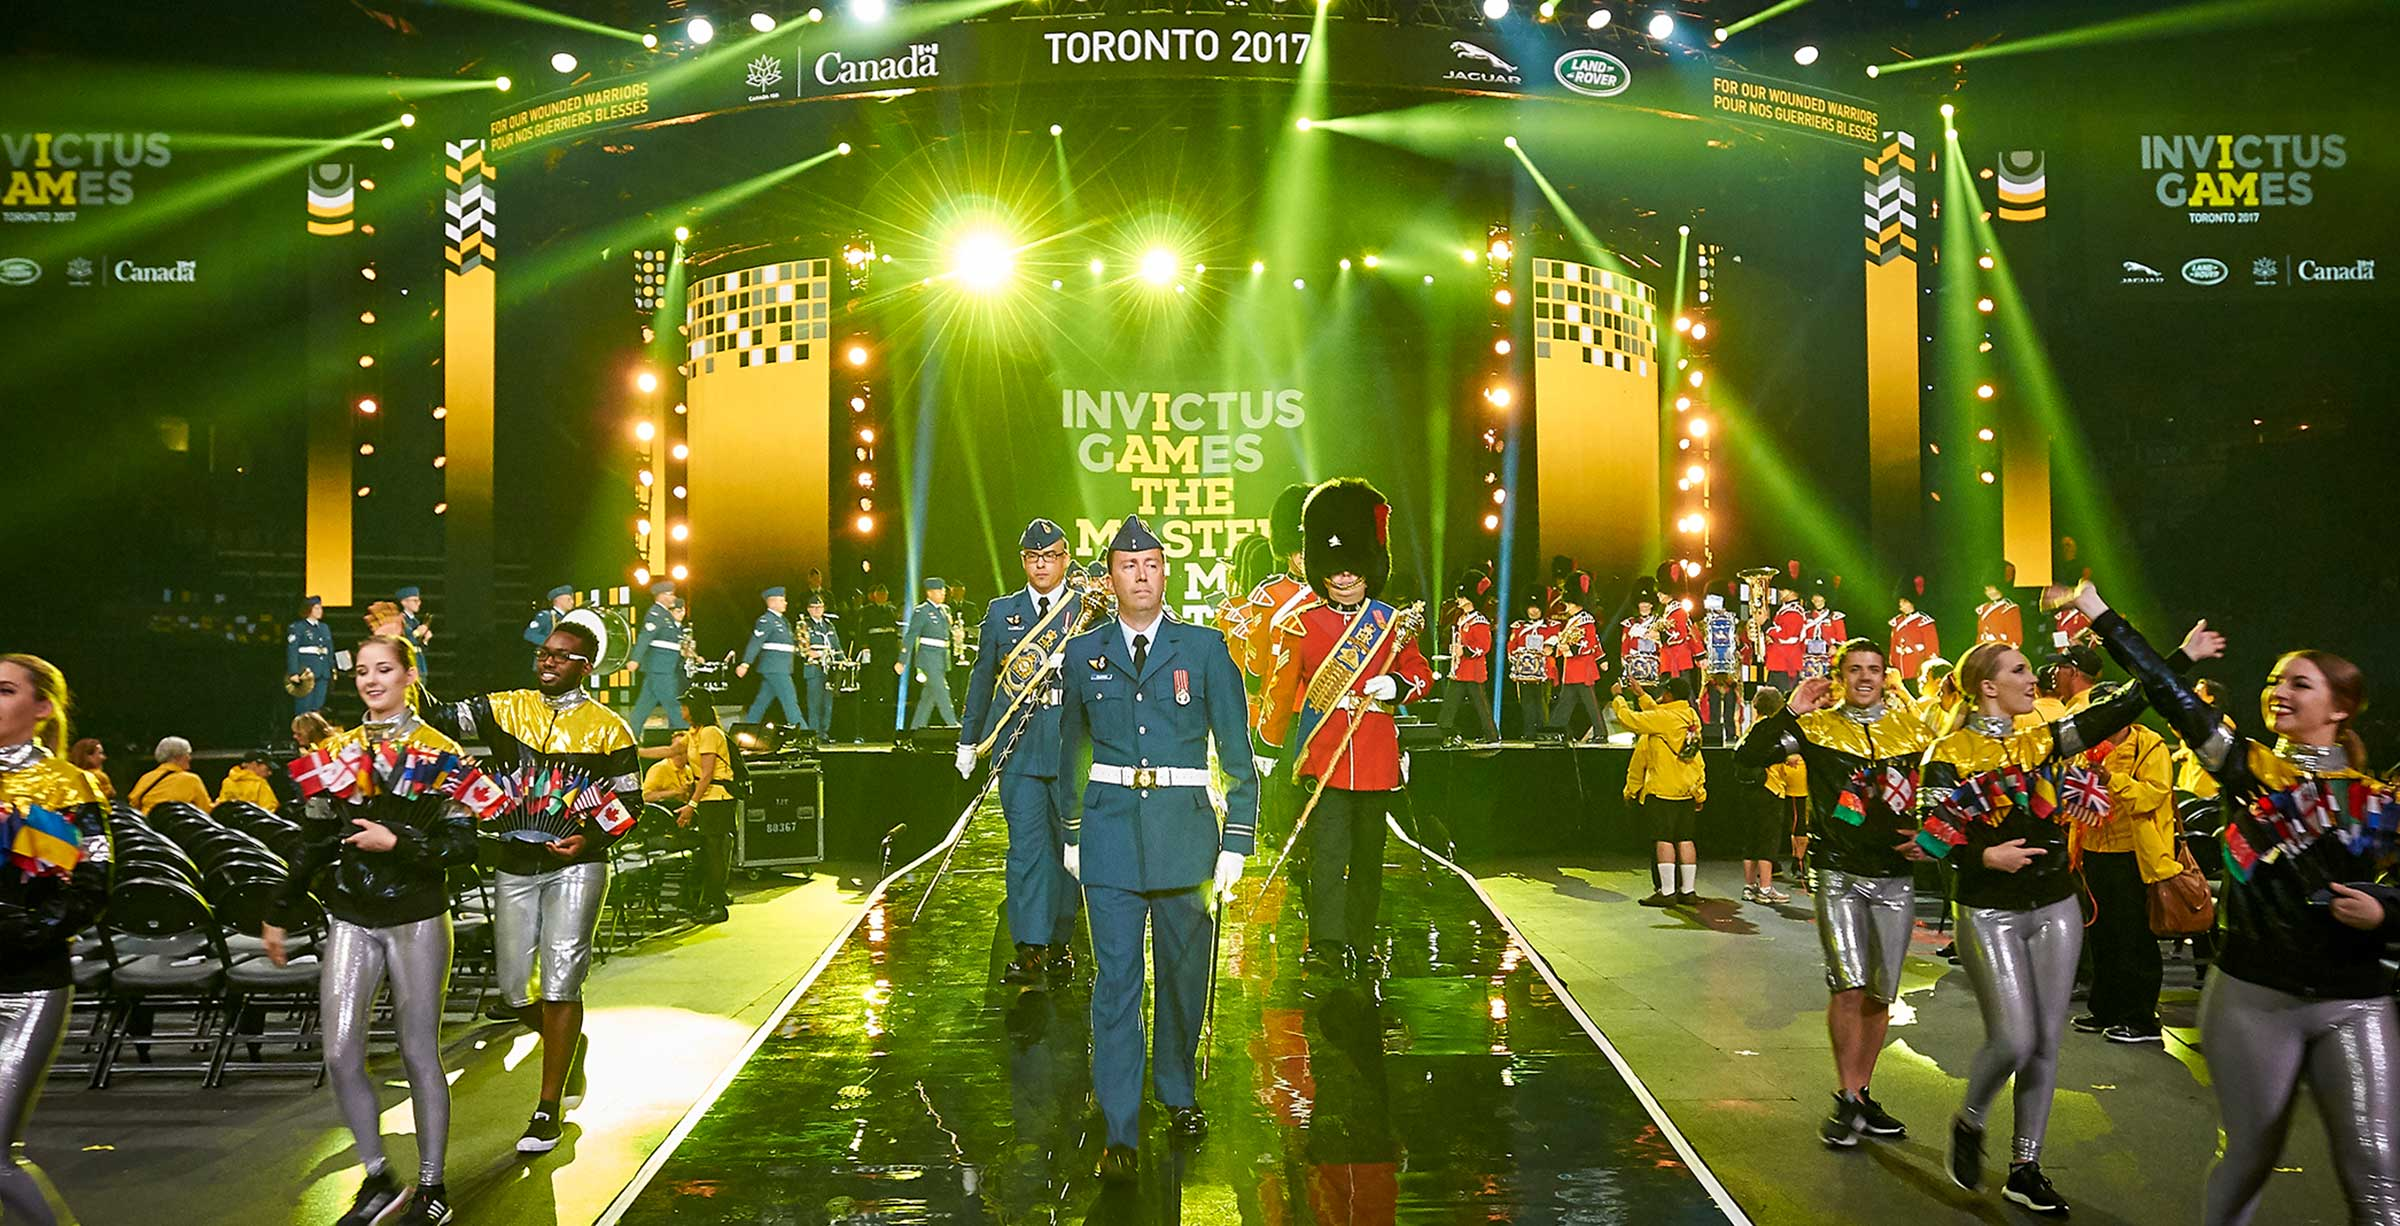 The 2017 Invictus Games Opening Ceremony